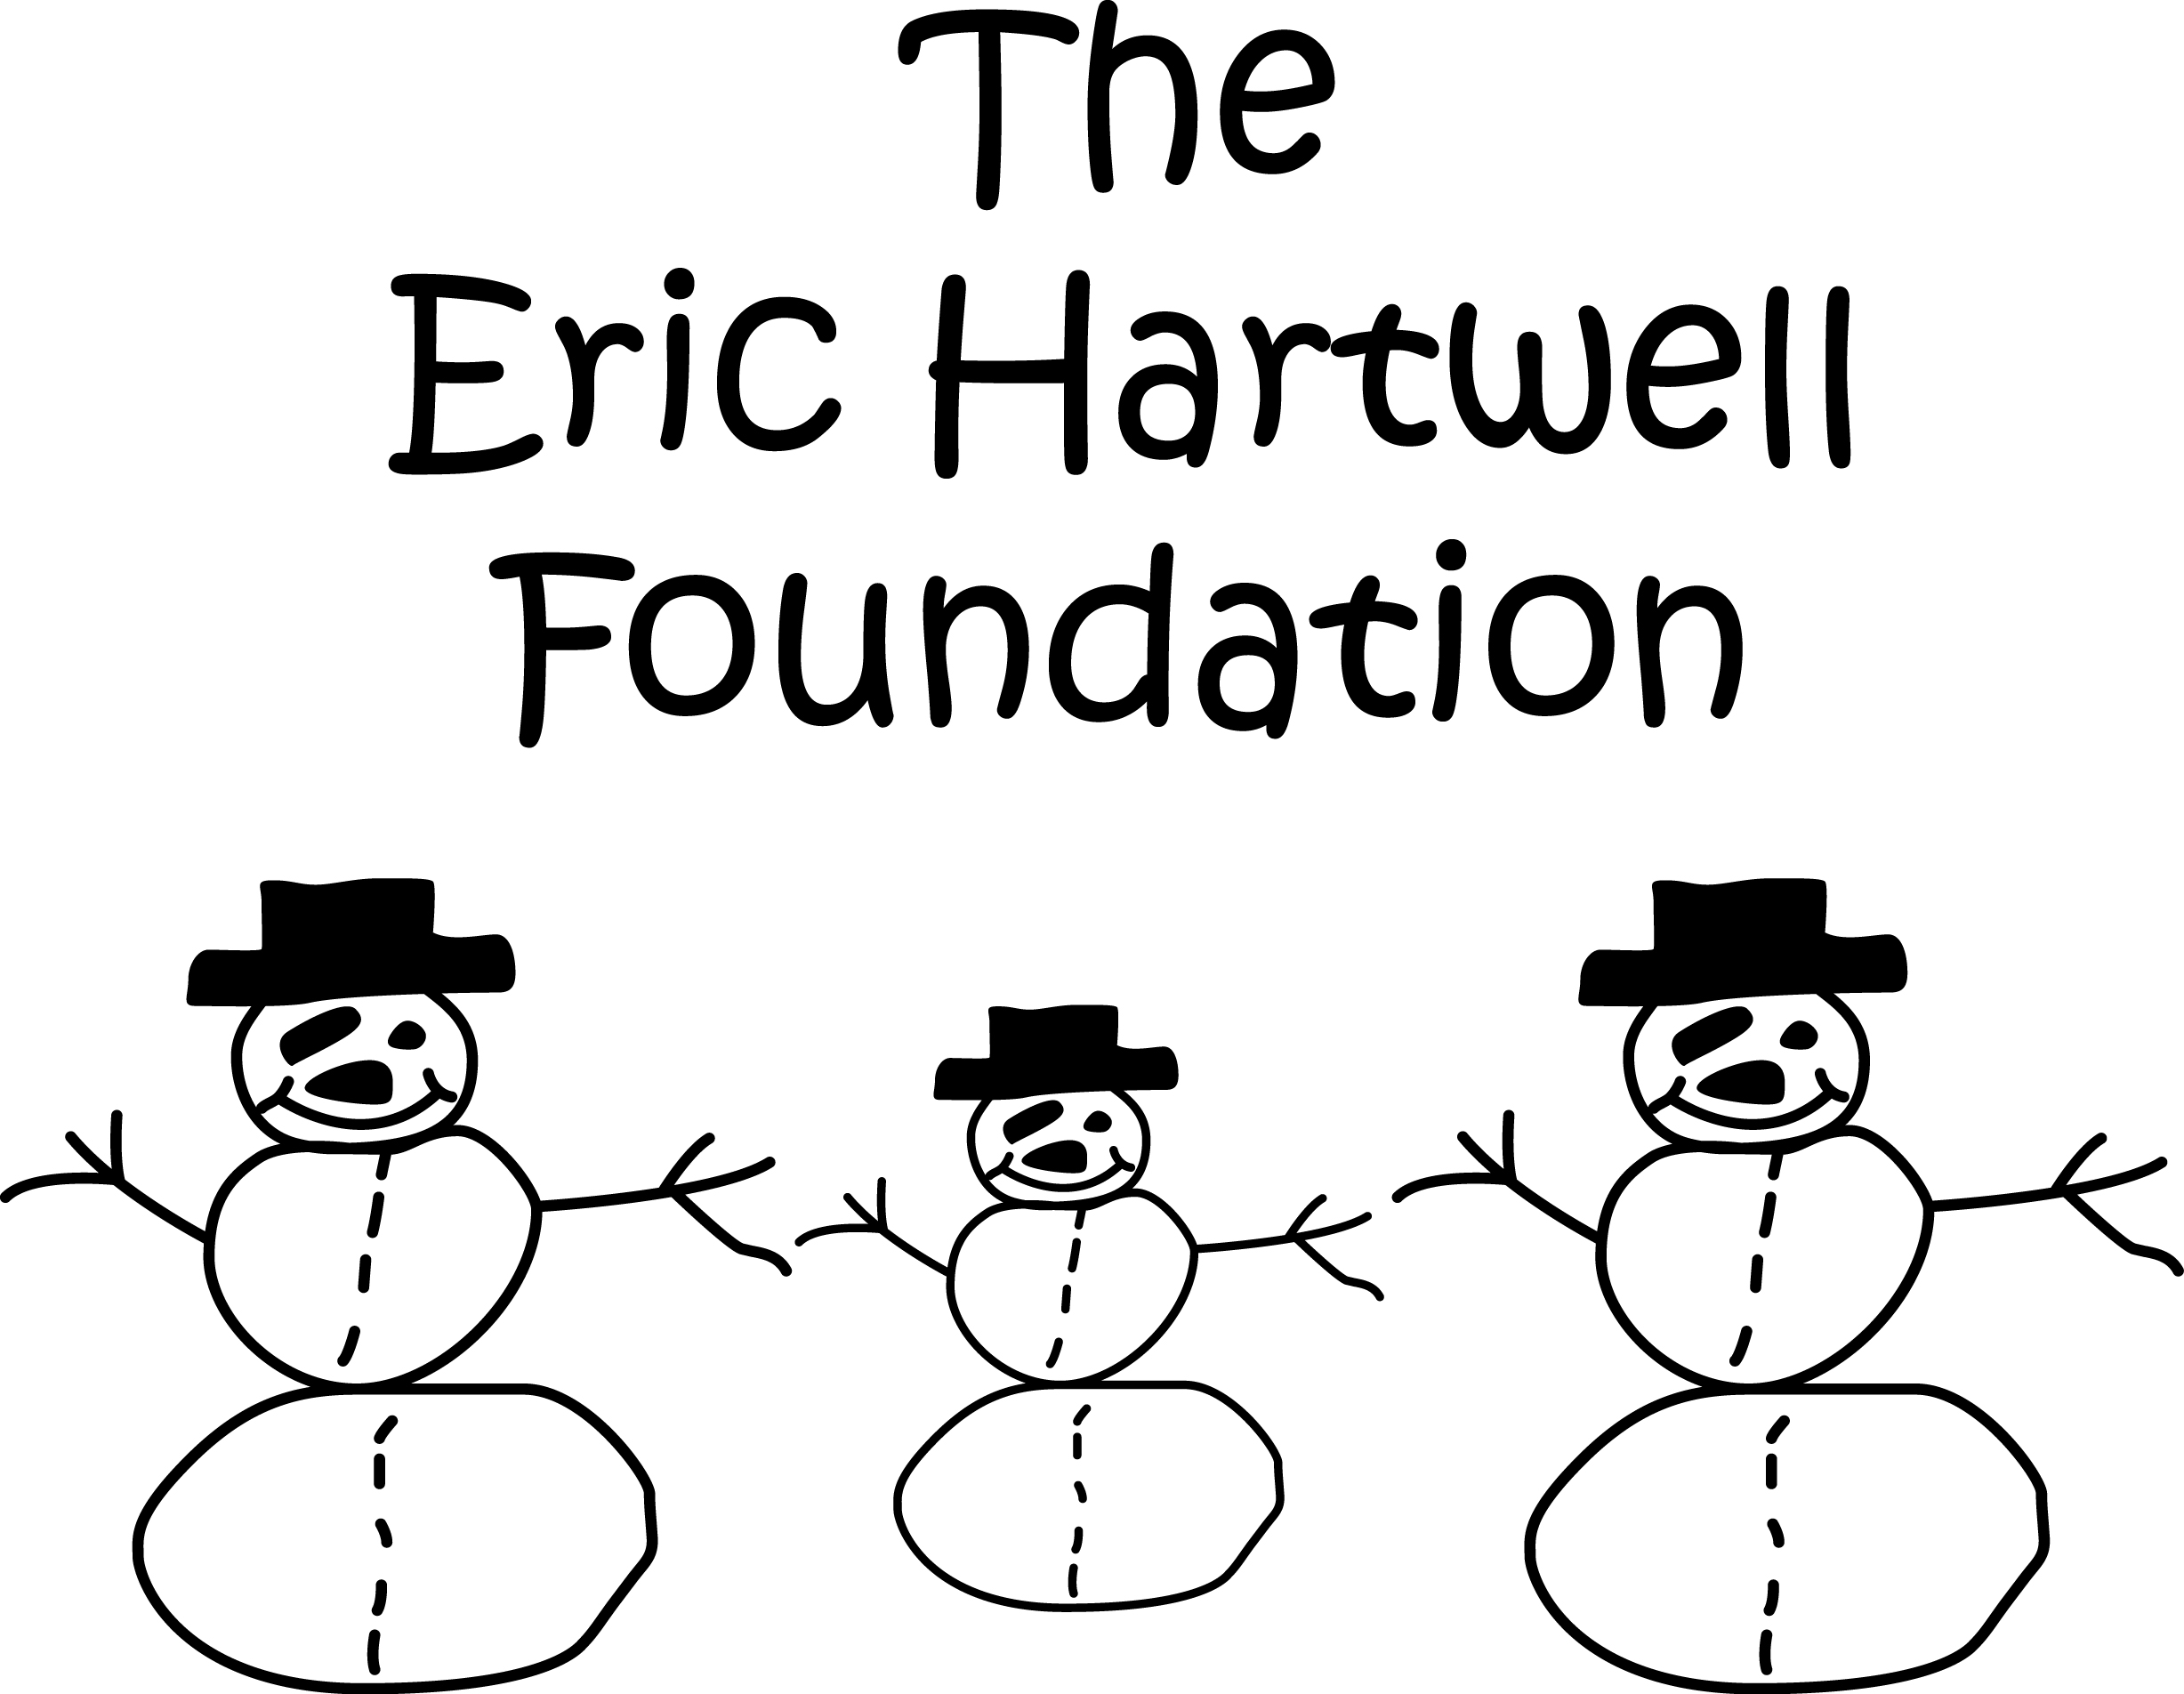 The Eric Hartwell Foundation logo